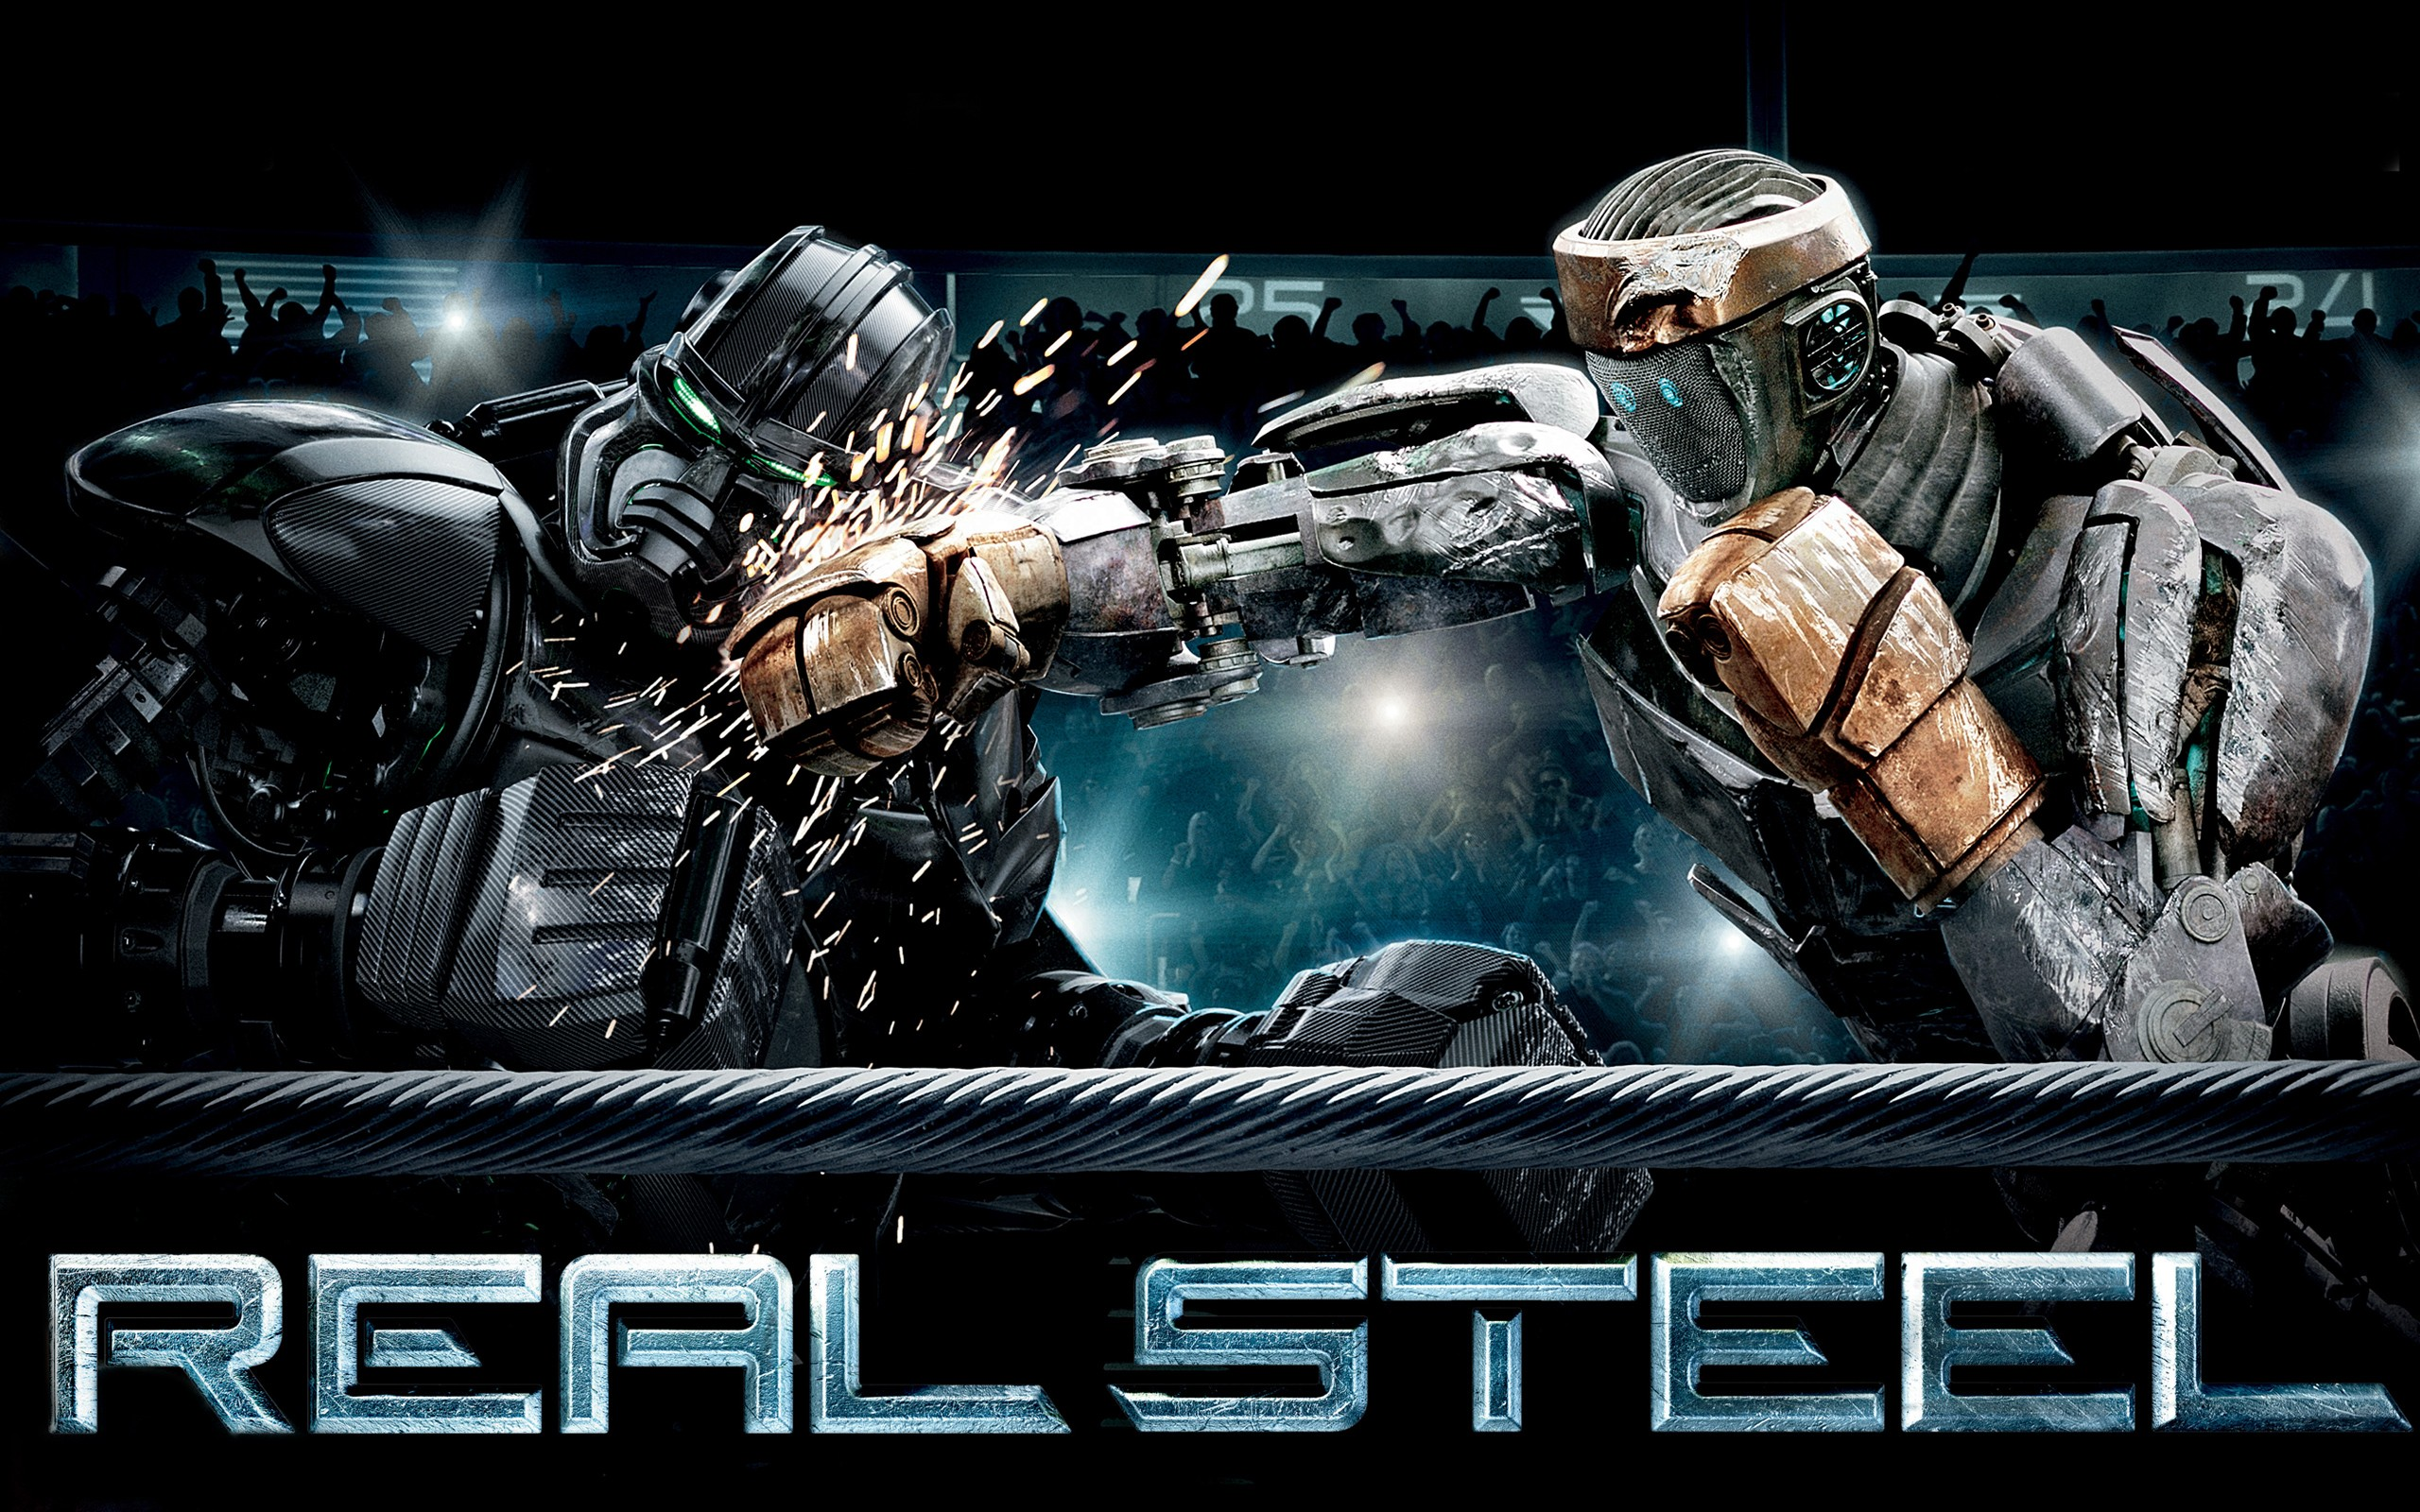 Real Steel Computer Wallpapers Desktop Backgrounds 2560x1600 ID 2560x1600